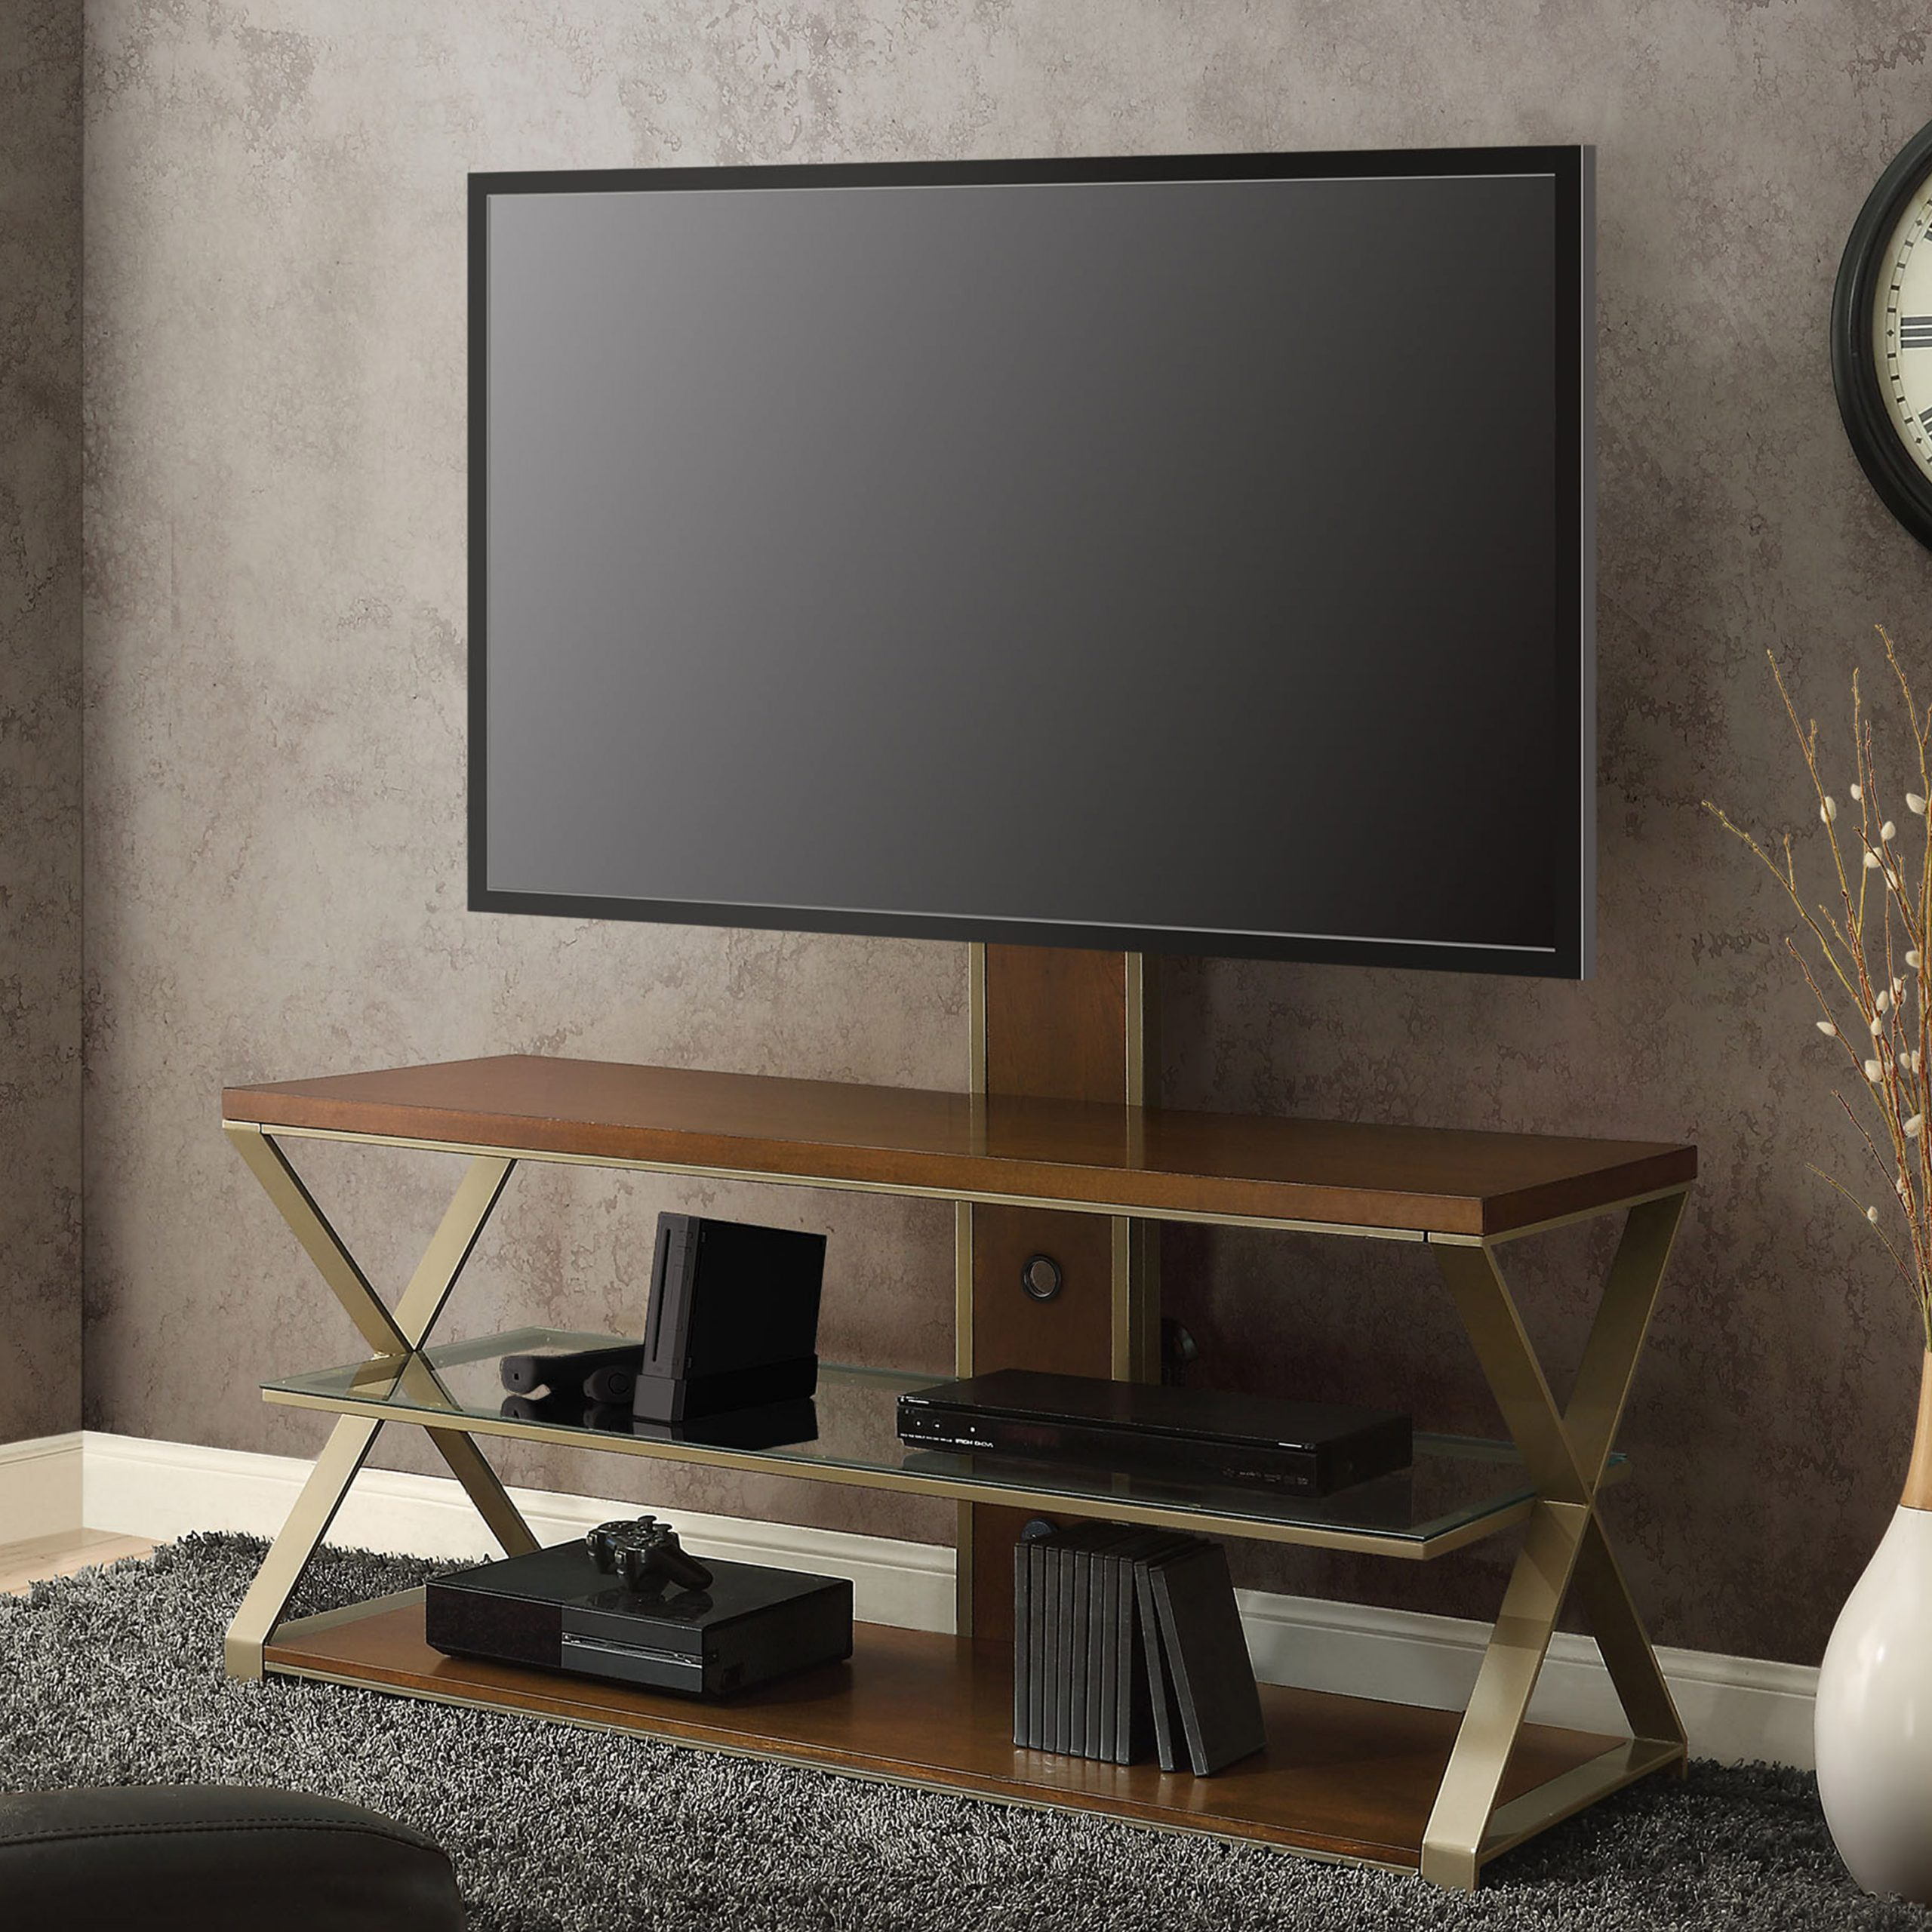 """Widely Used Jaxon 3 In 1 Television Stand For Tvs Up To 70"""", With 3 With Lorraine Tv Stands For Tvs Up To 70"""" (View 18 of 25)"""